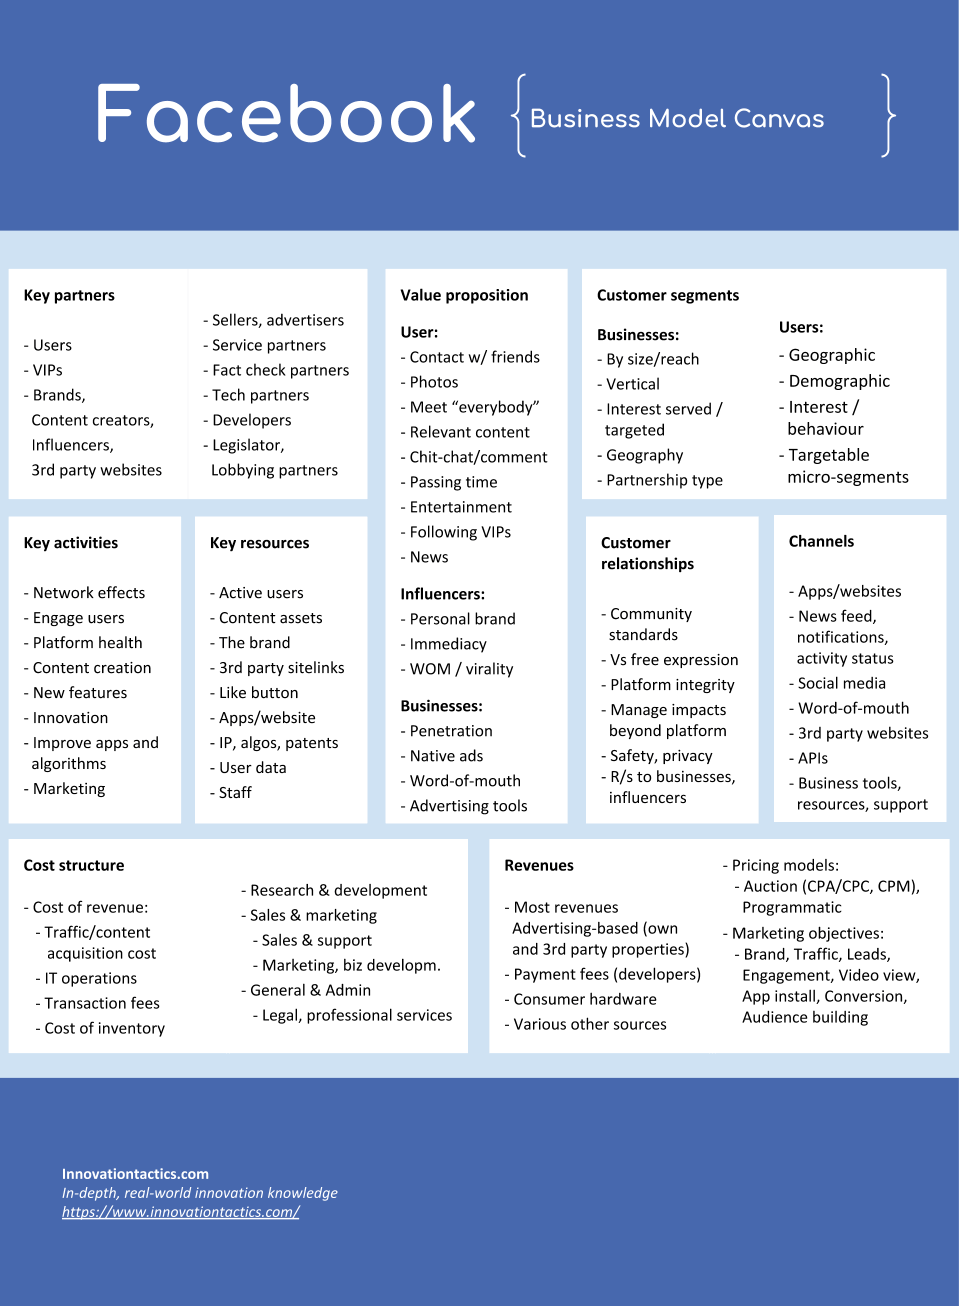 Facebook business model canvas ... but there is much more to learn (click image if you want to know more)